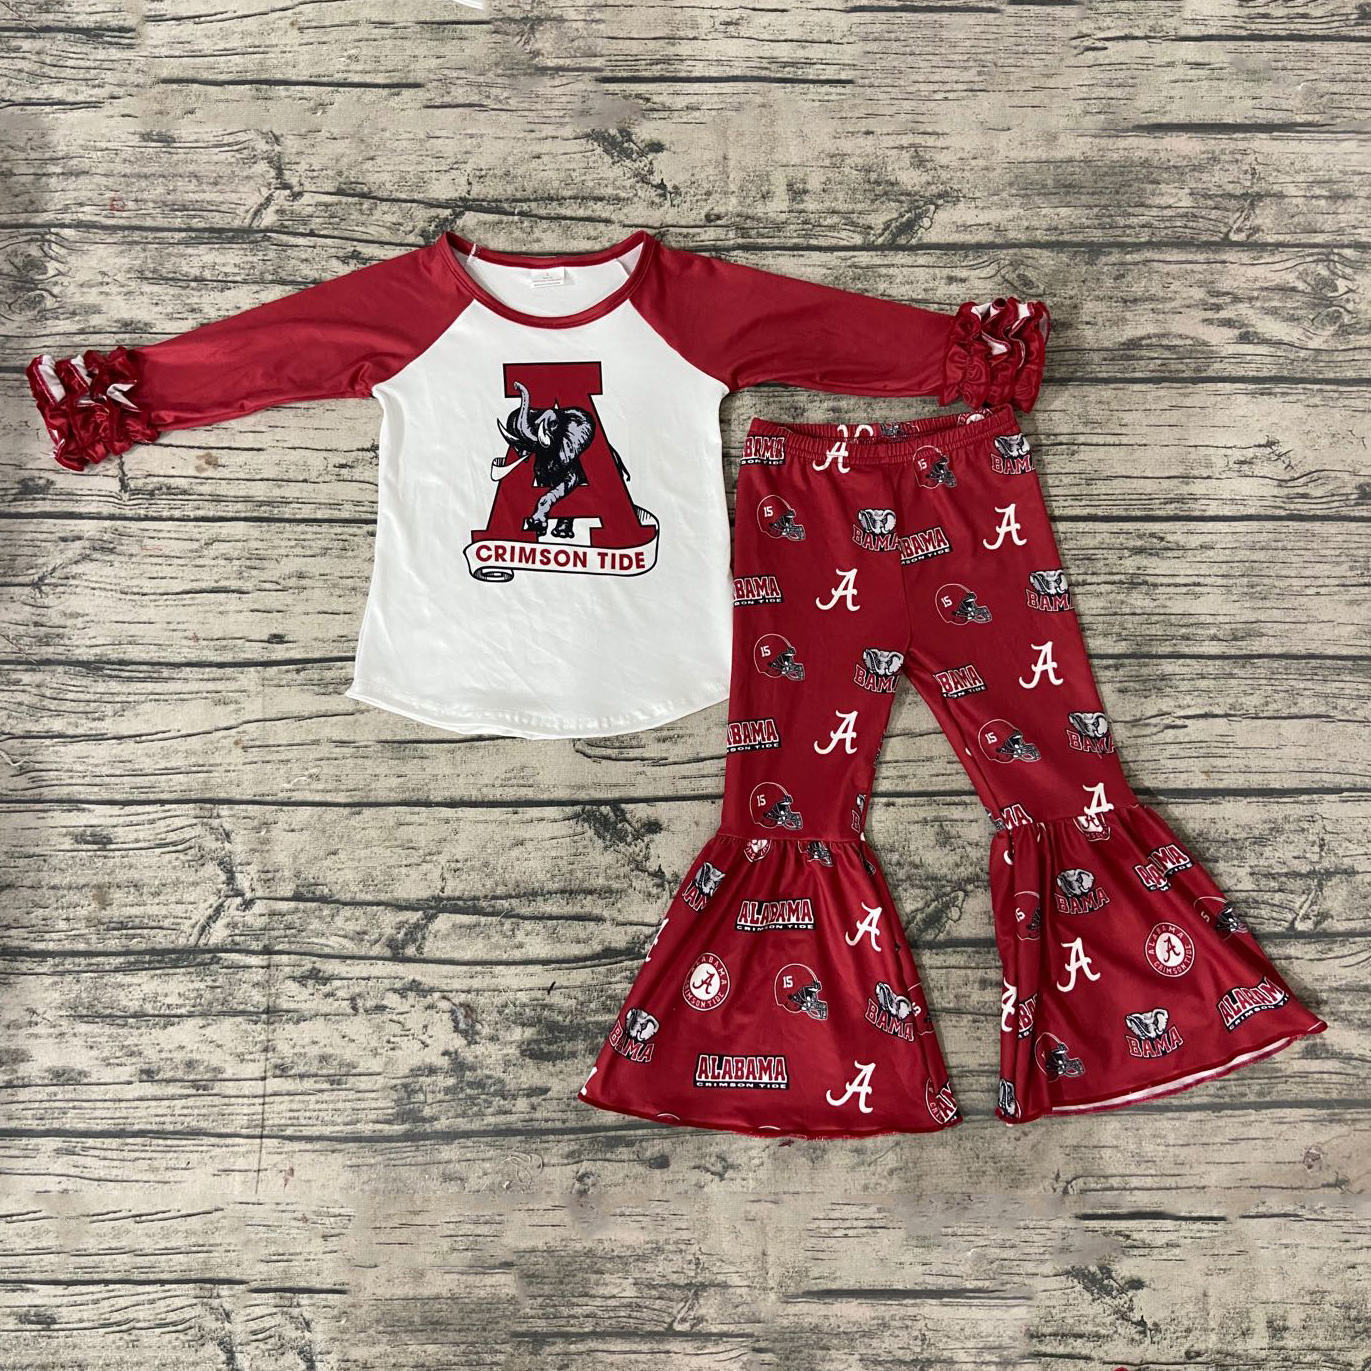 Kids Baby Girl Clothing Sets Alabama Saints Football T-shirt Flare Pants 2PCS Suit Outfit Children Boutique Outfits